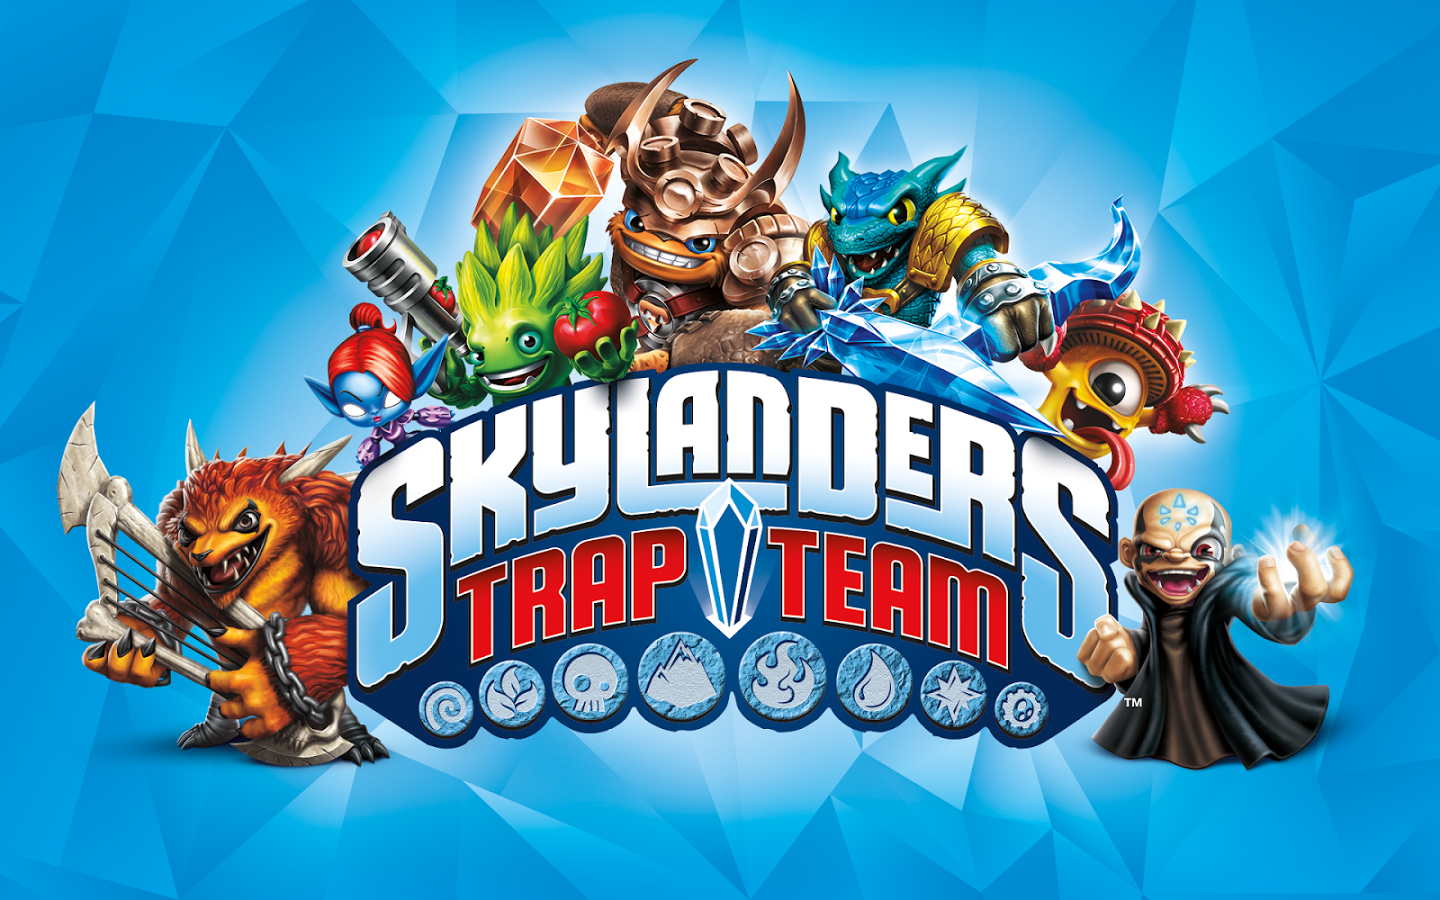 Uncategorized Skylanders Games Play Free skylanders trapforce giveaway on the blog main street mama here is cutscene theater video for 4 adventure pack expansions to trap team stories are not really related l